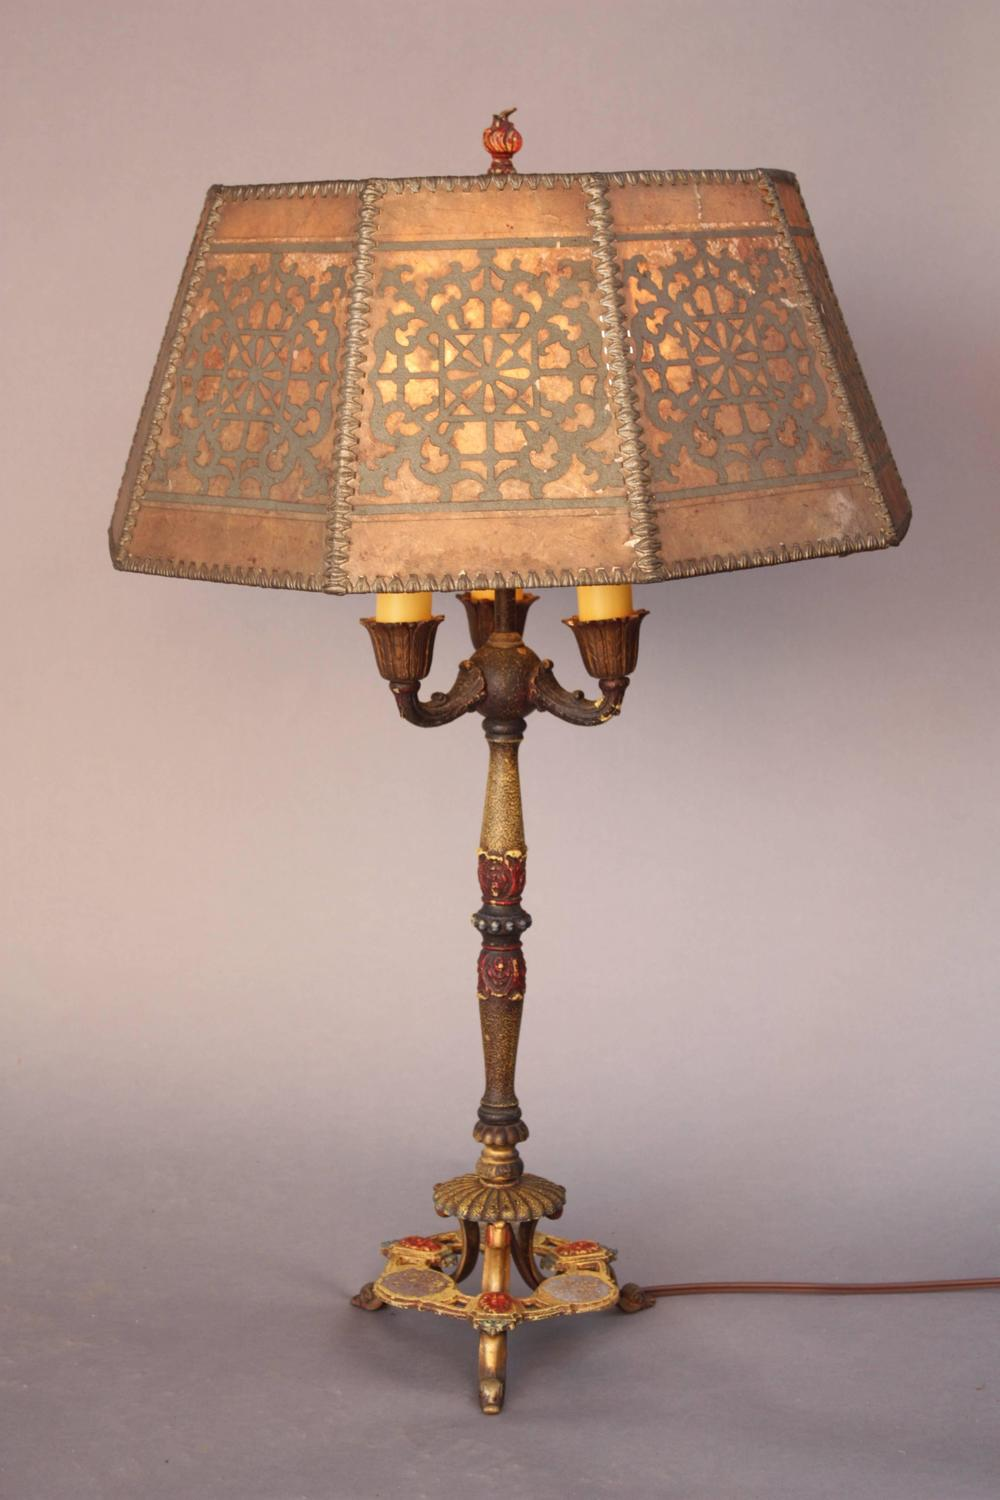 Outstanding Antique Table Lamp With Original Mica Shade At